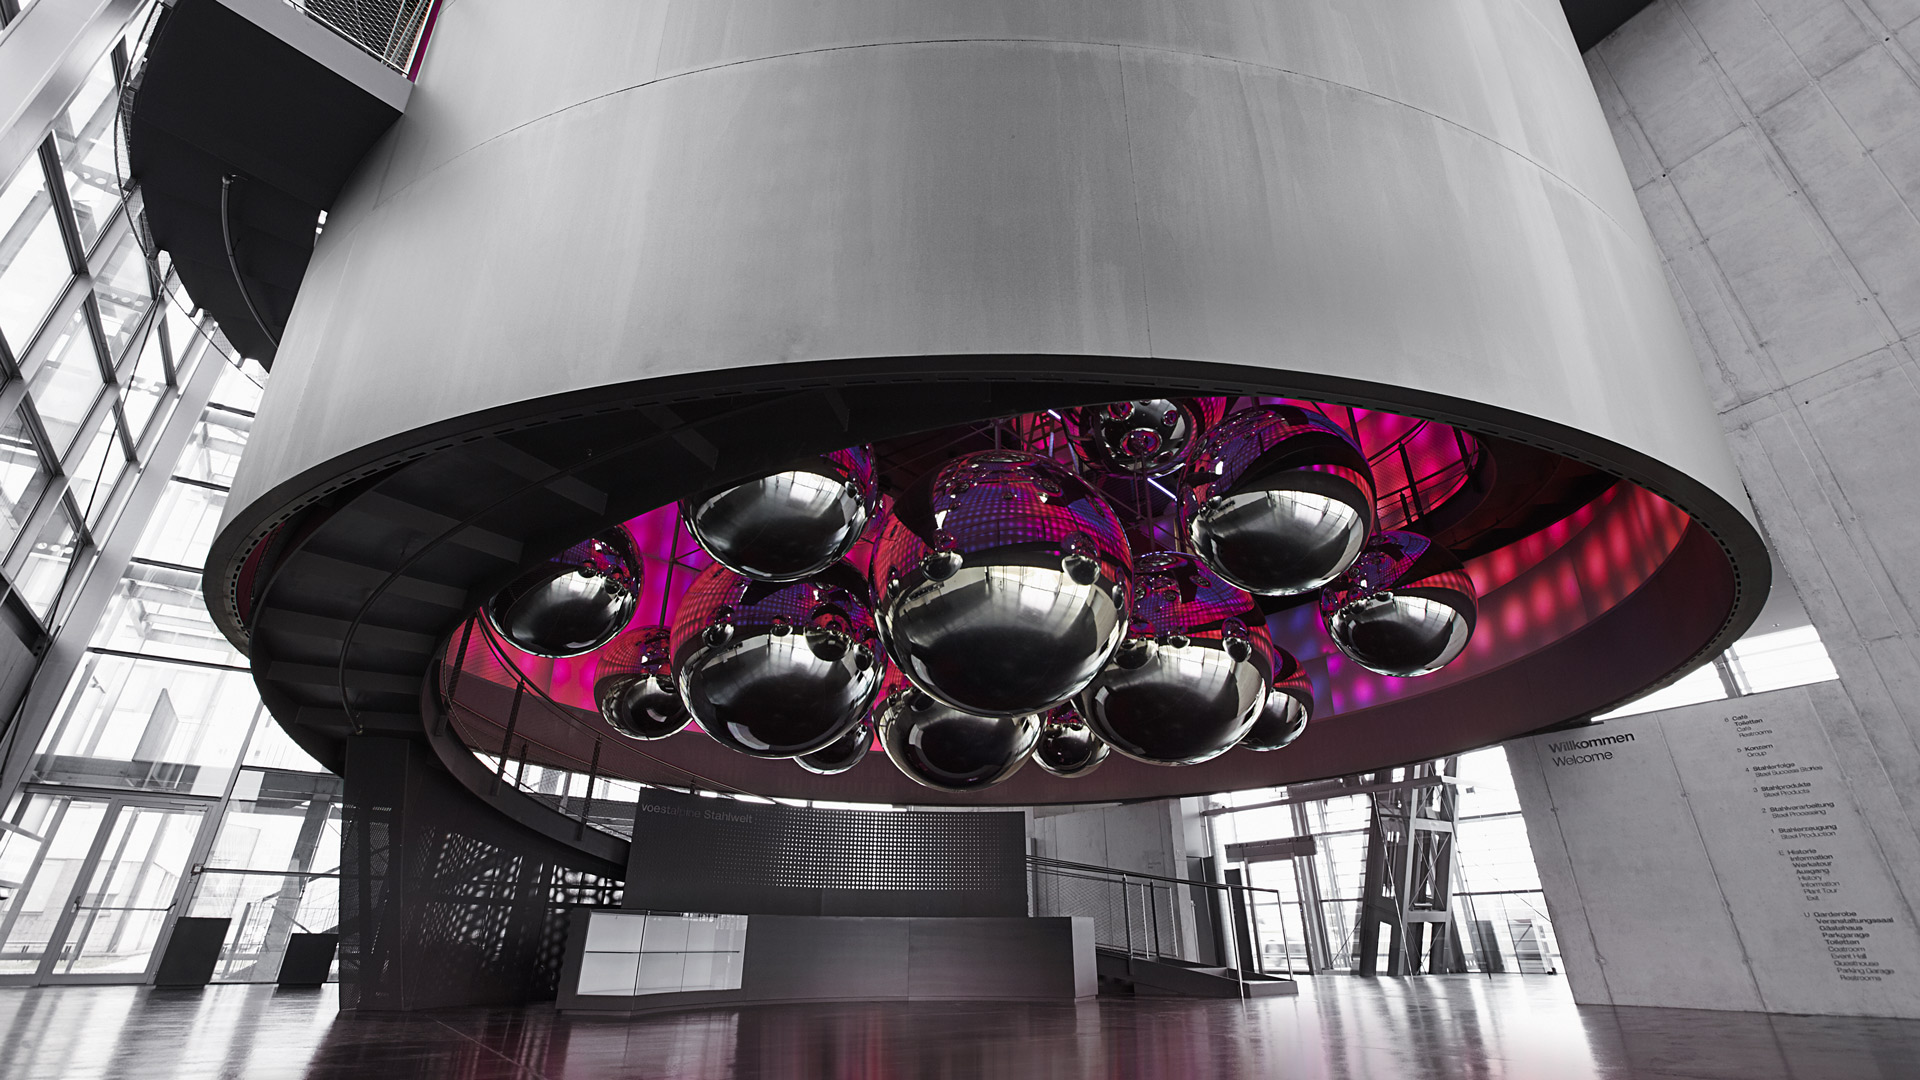 Many hanging steel balls form a sculpture in the entrance hall of the Voestalpine Stahlwelt.